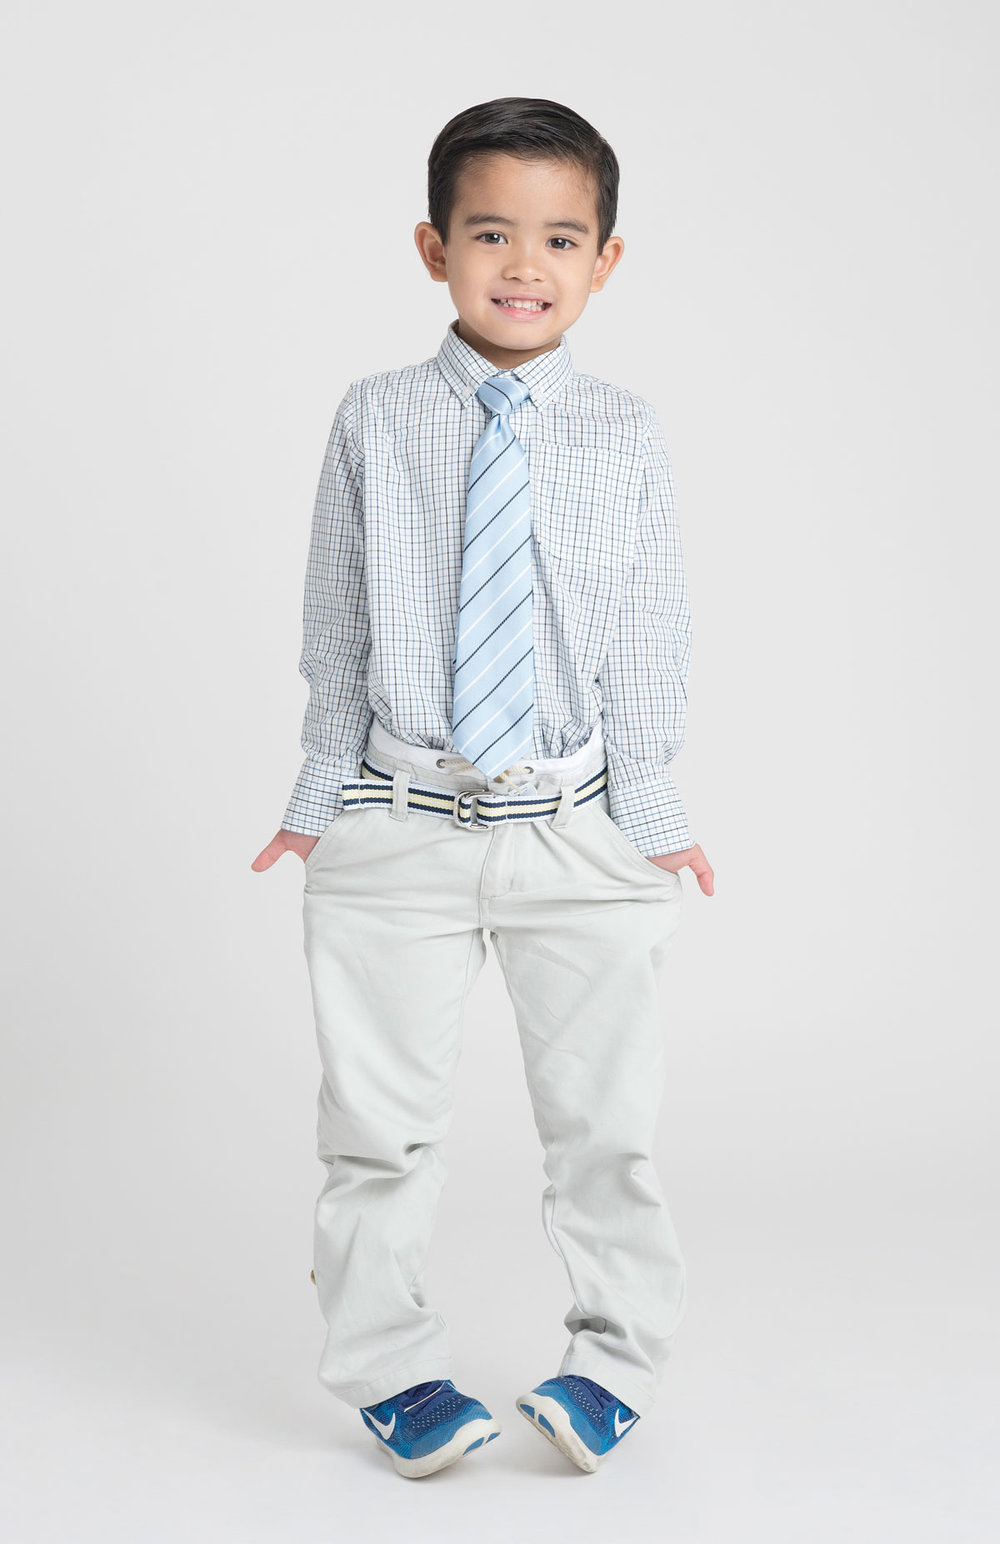 Heights-Studio-Childrens-Portrait-11.jpg